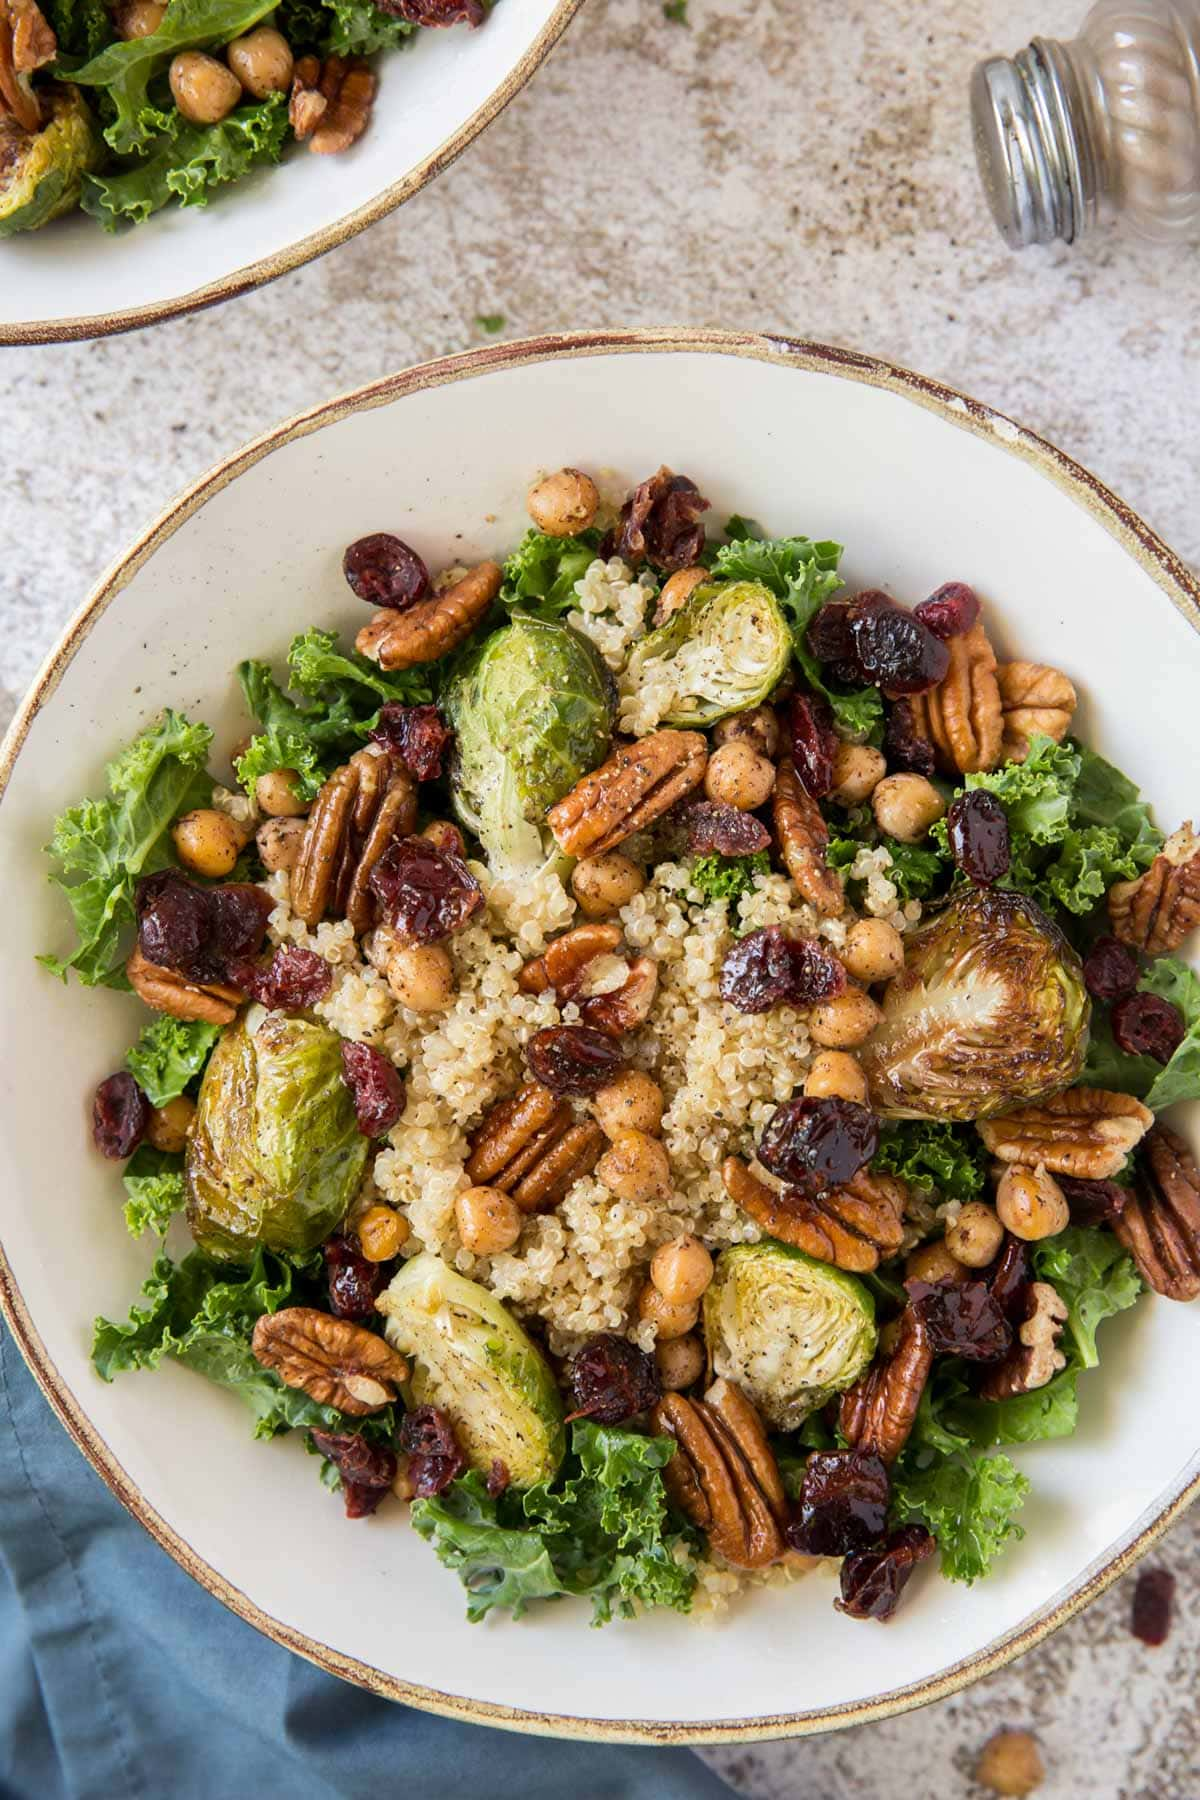 kale, pecans, brussels sprouts, cranberries, white plate, blue napkin